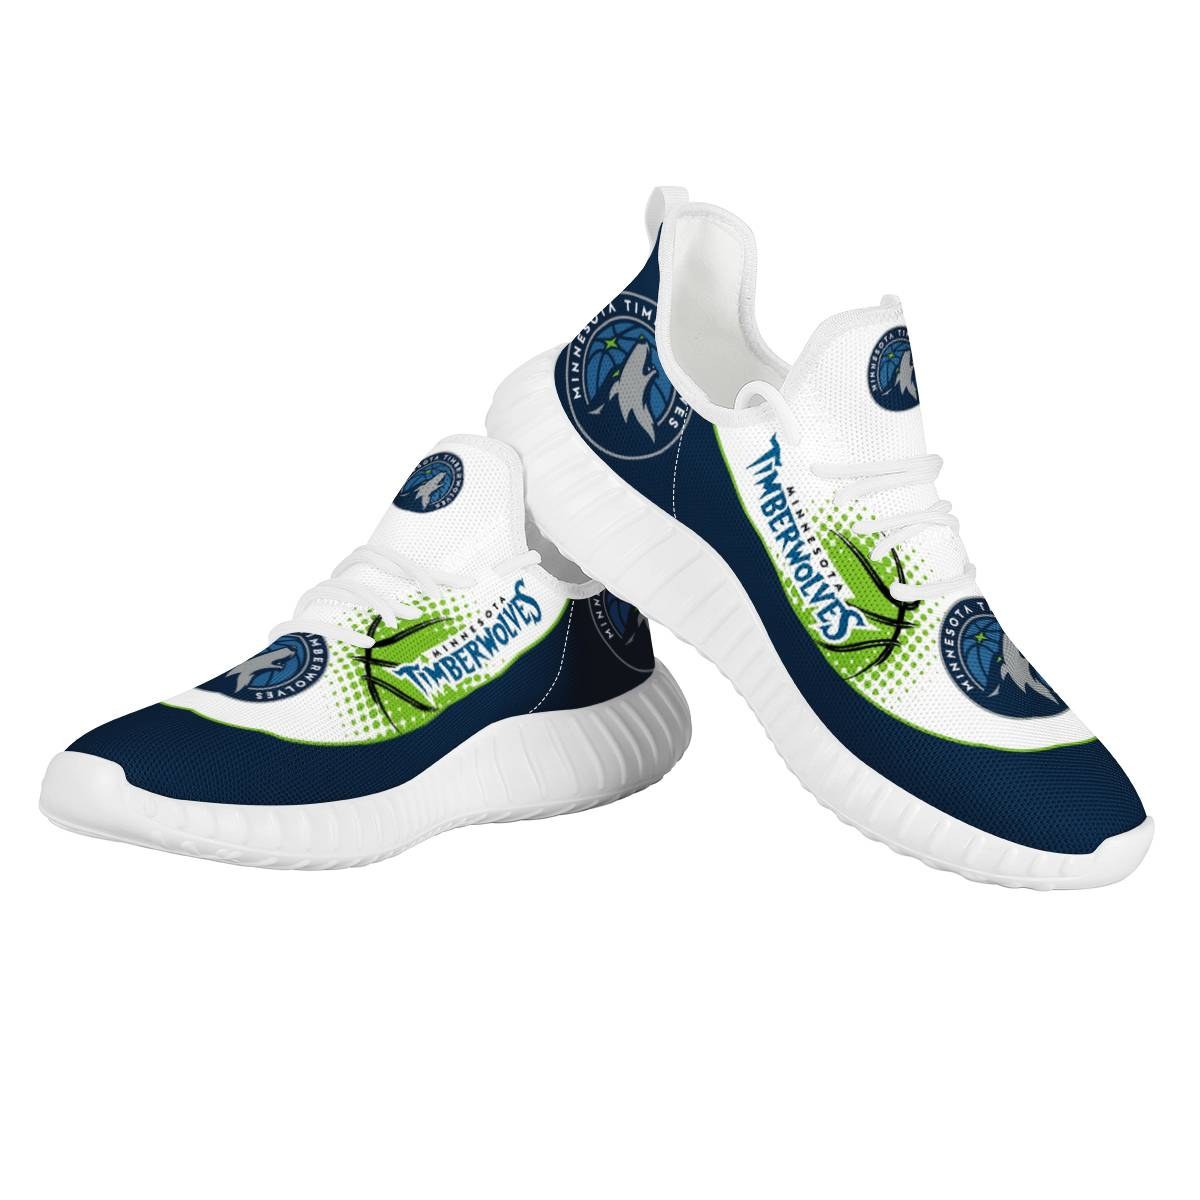 Men's Minnesota Timberwolves Mesh Knit Sneakers/Shoes 001